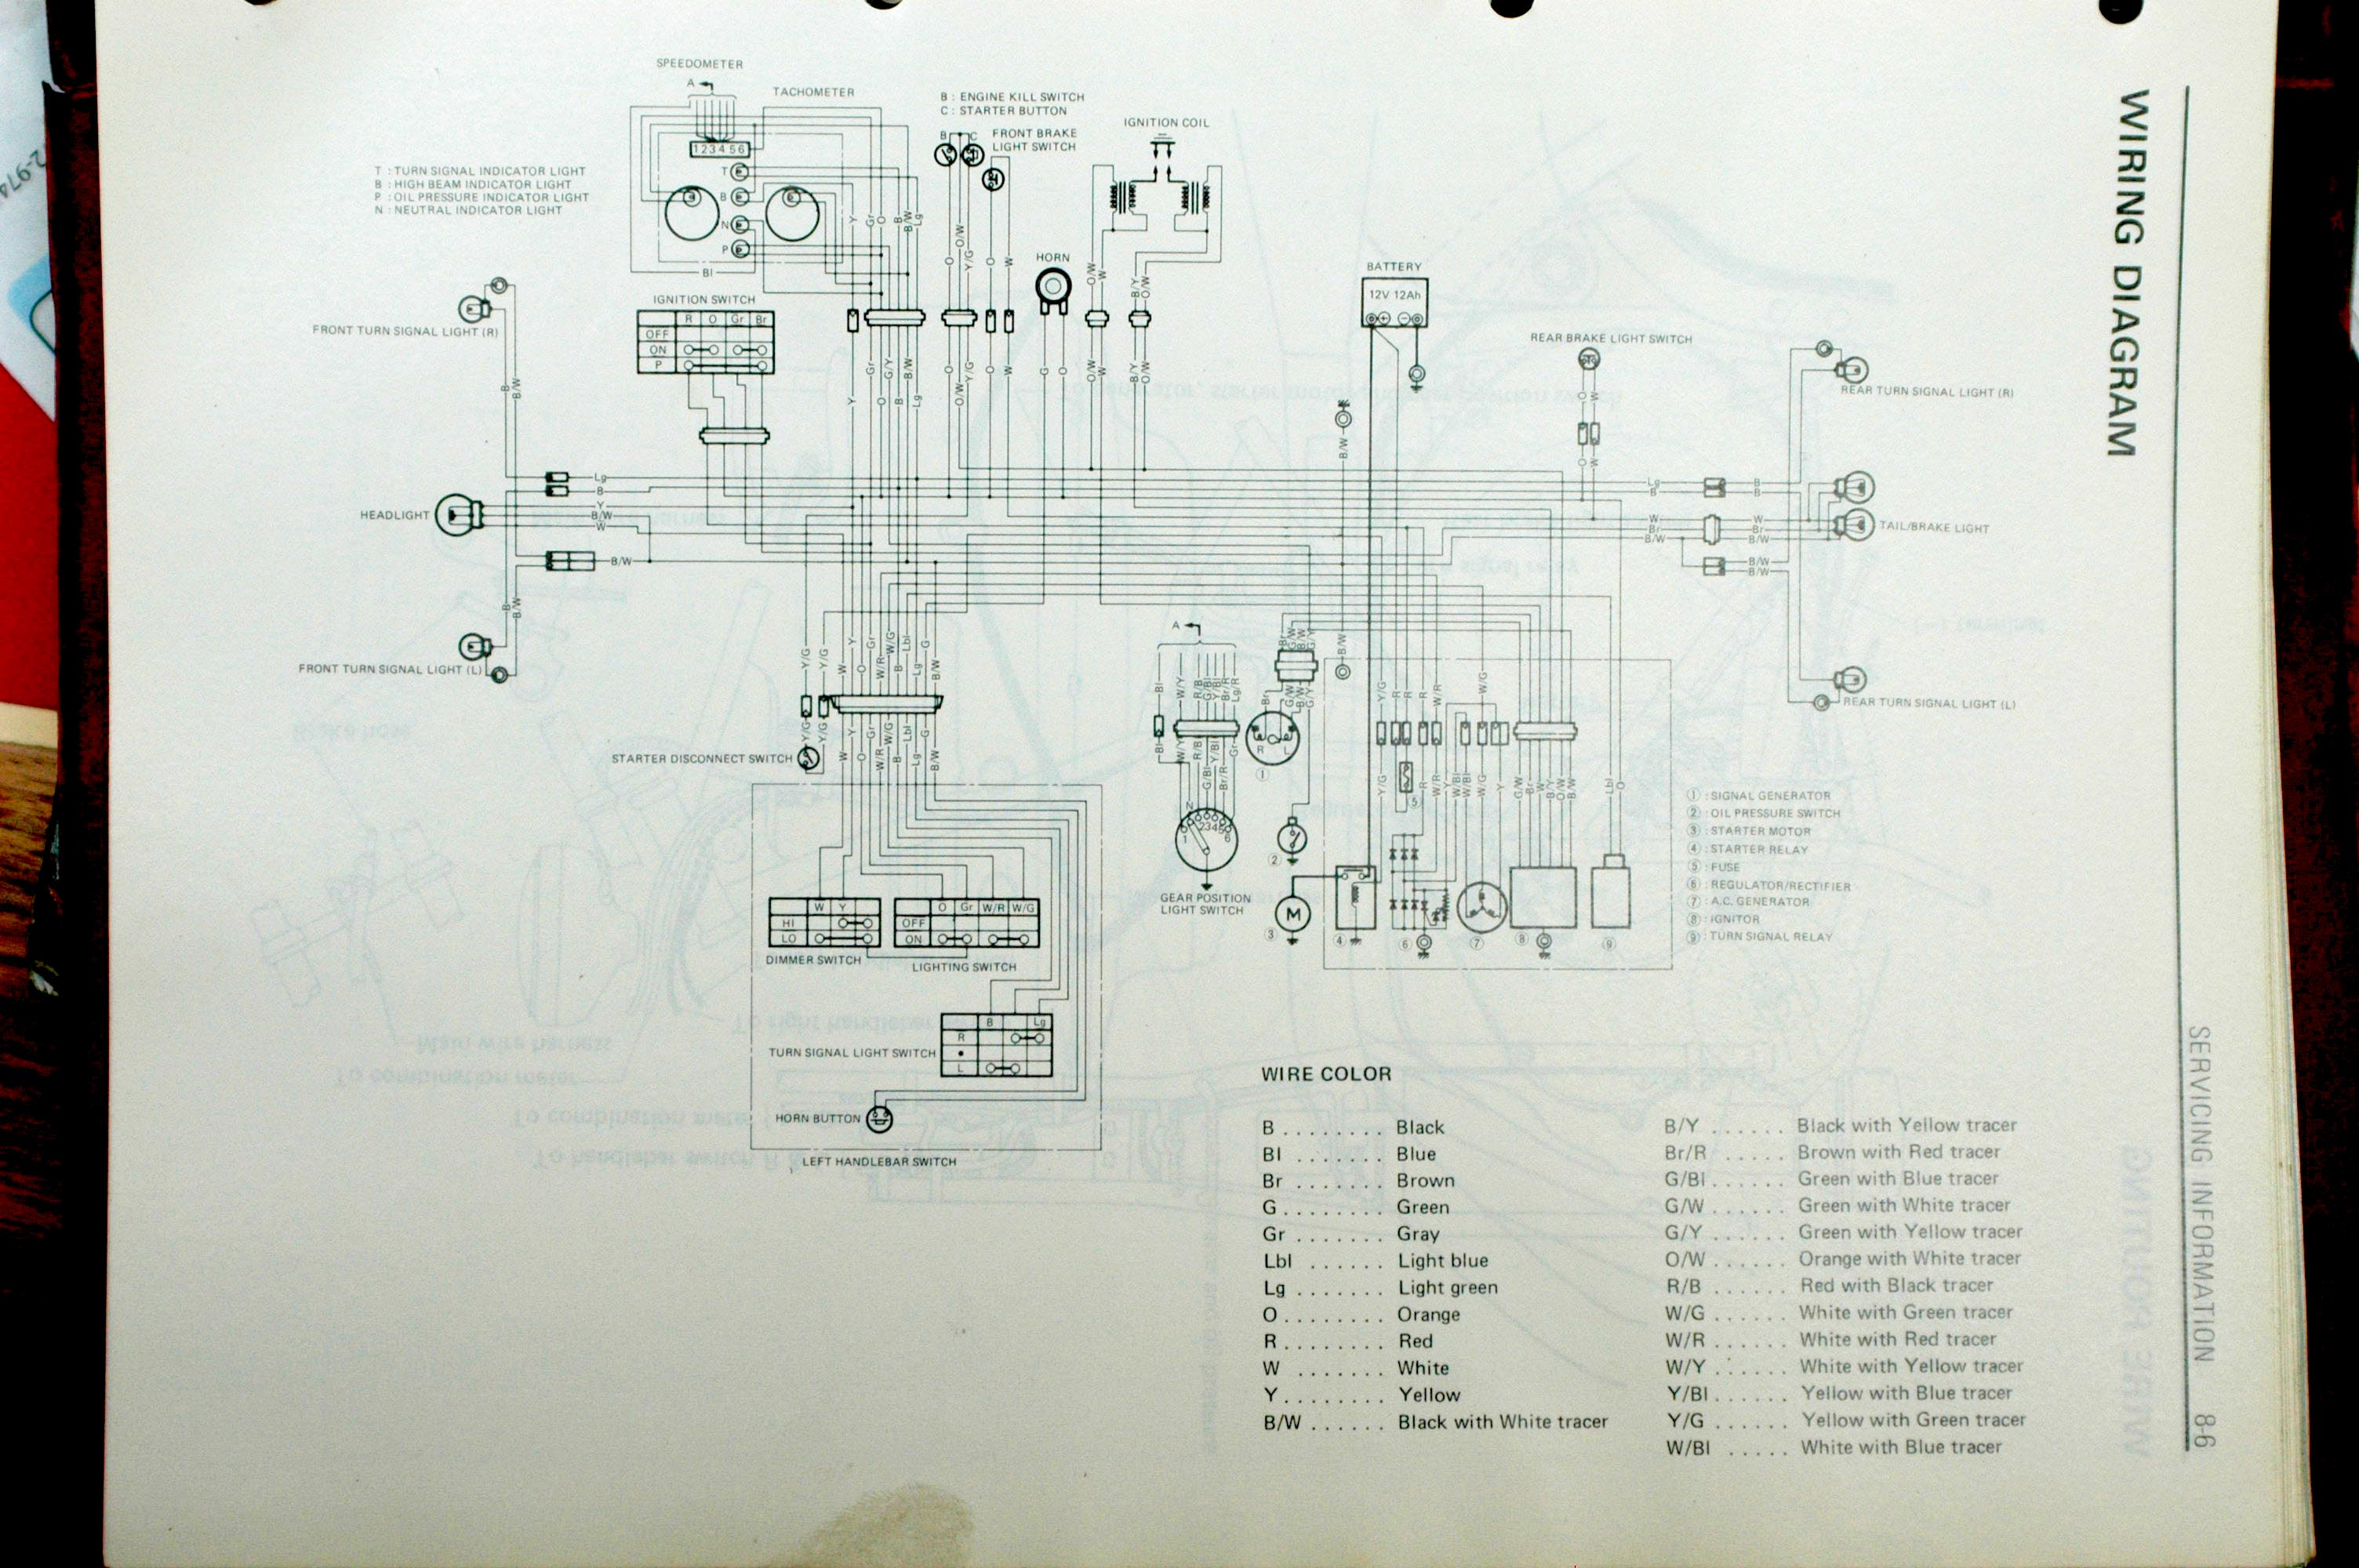 With Fiat 500 Wiring Diagram Moreover Wiring Diagram For 2012 Fiat 500